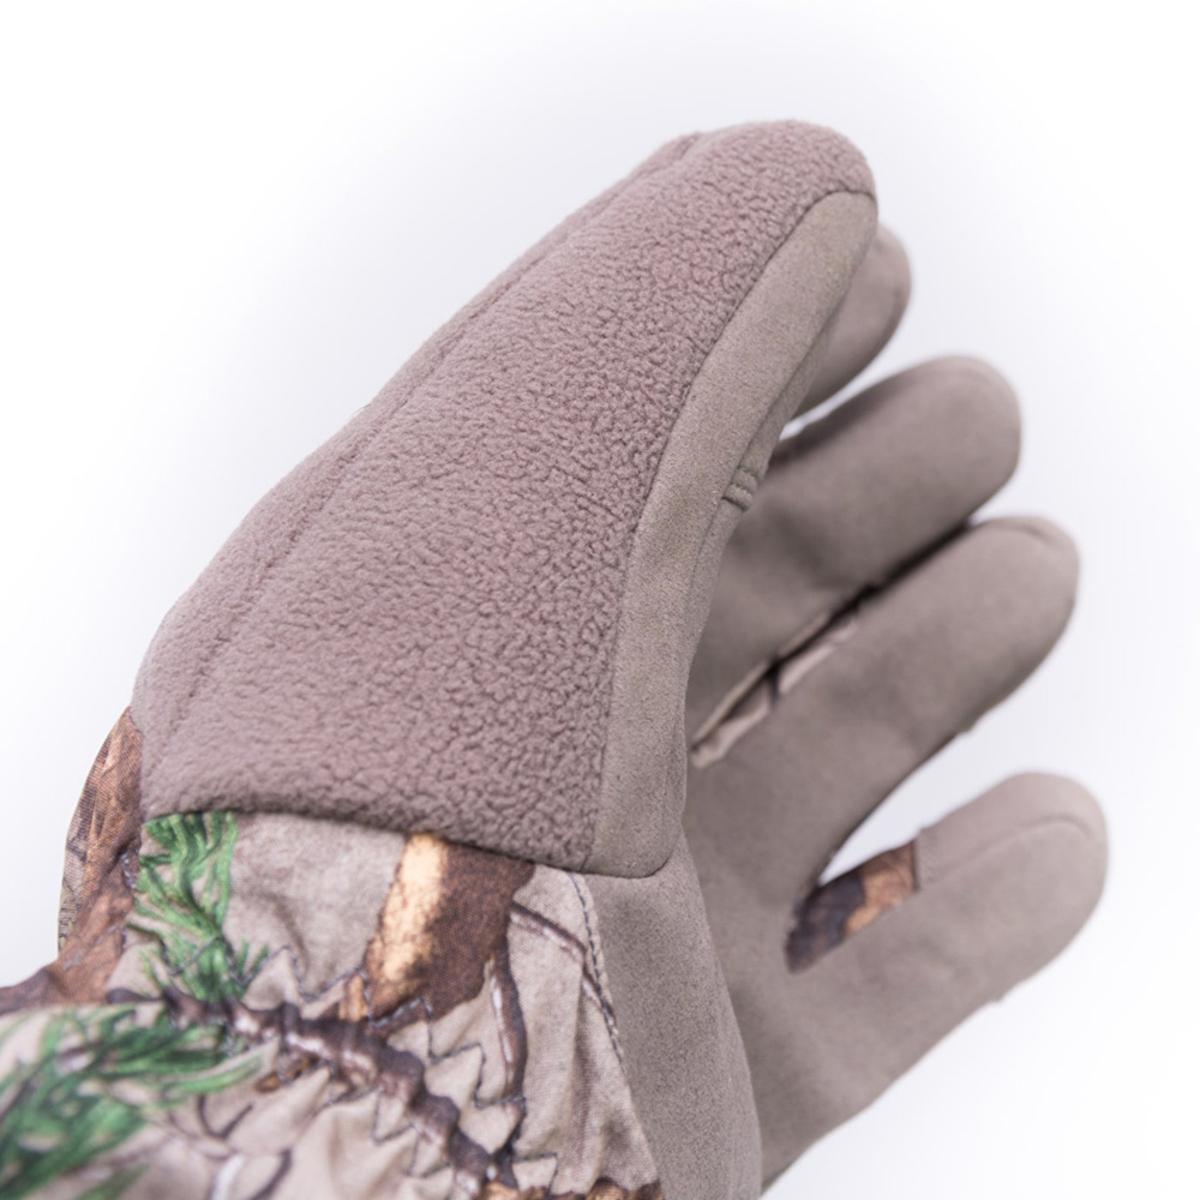 Seal Skinz Waterproof Extreme Cold Weather Gauntlet Guantes Unisex Adulto